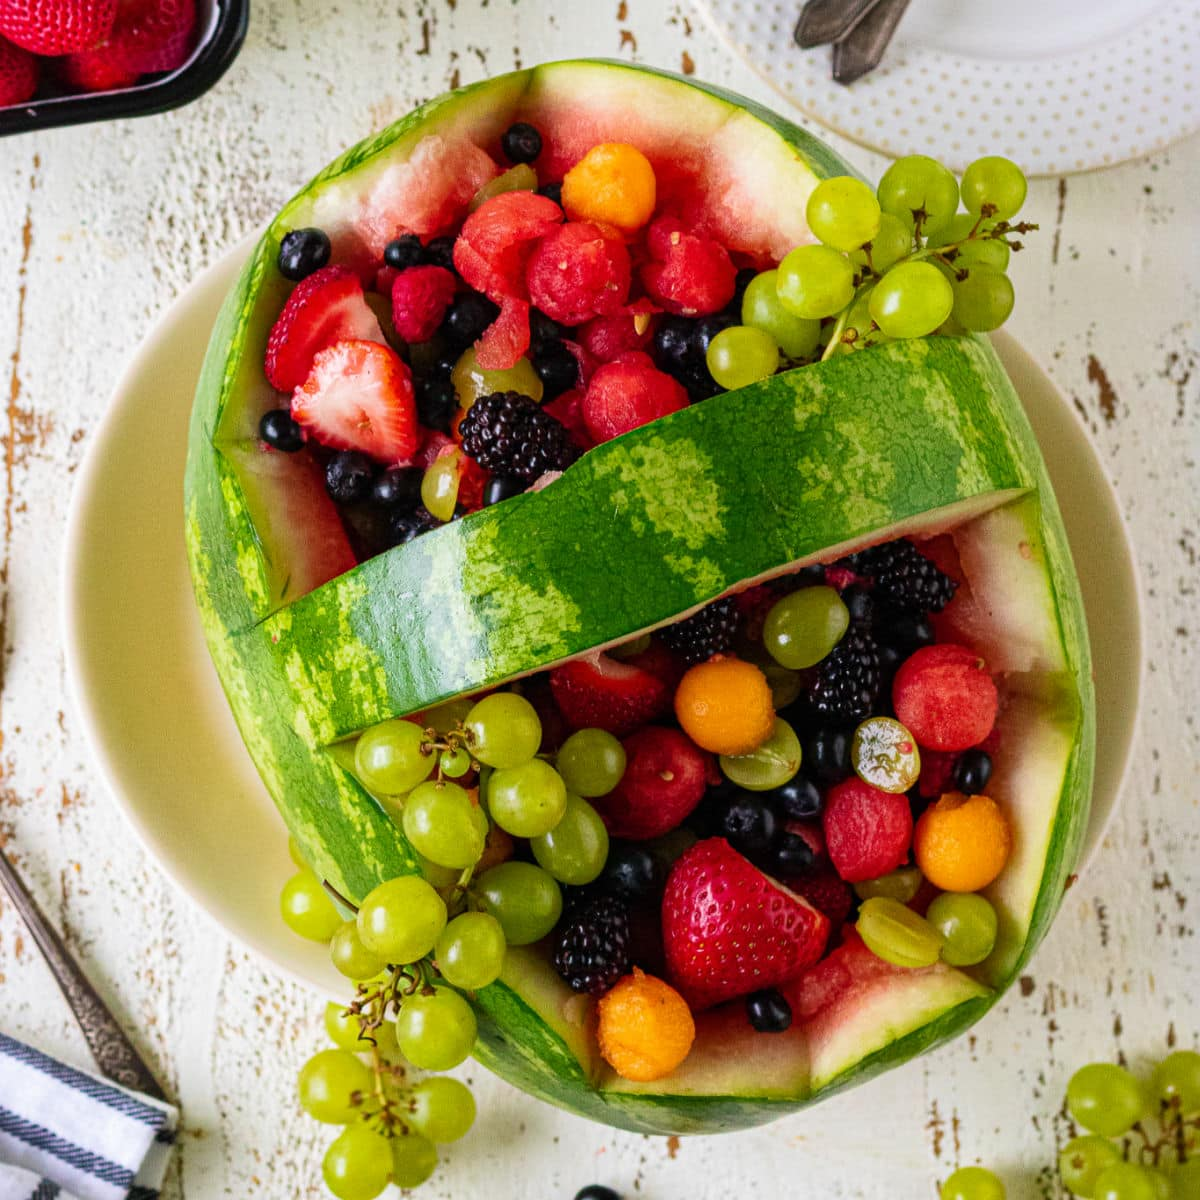 Overhead view of the finished watermelon basket filled with an assortment of fruit.